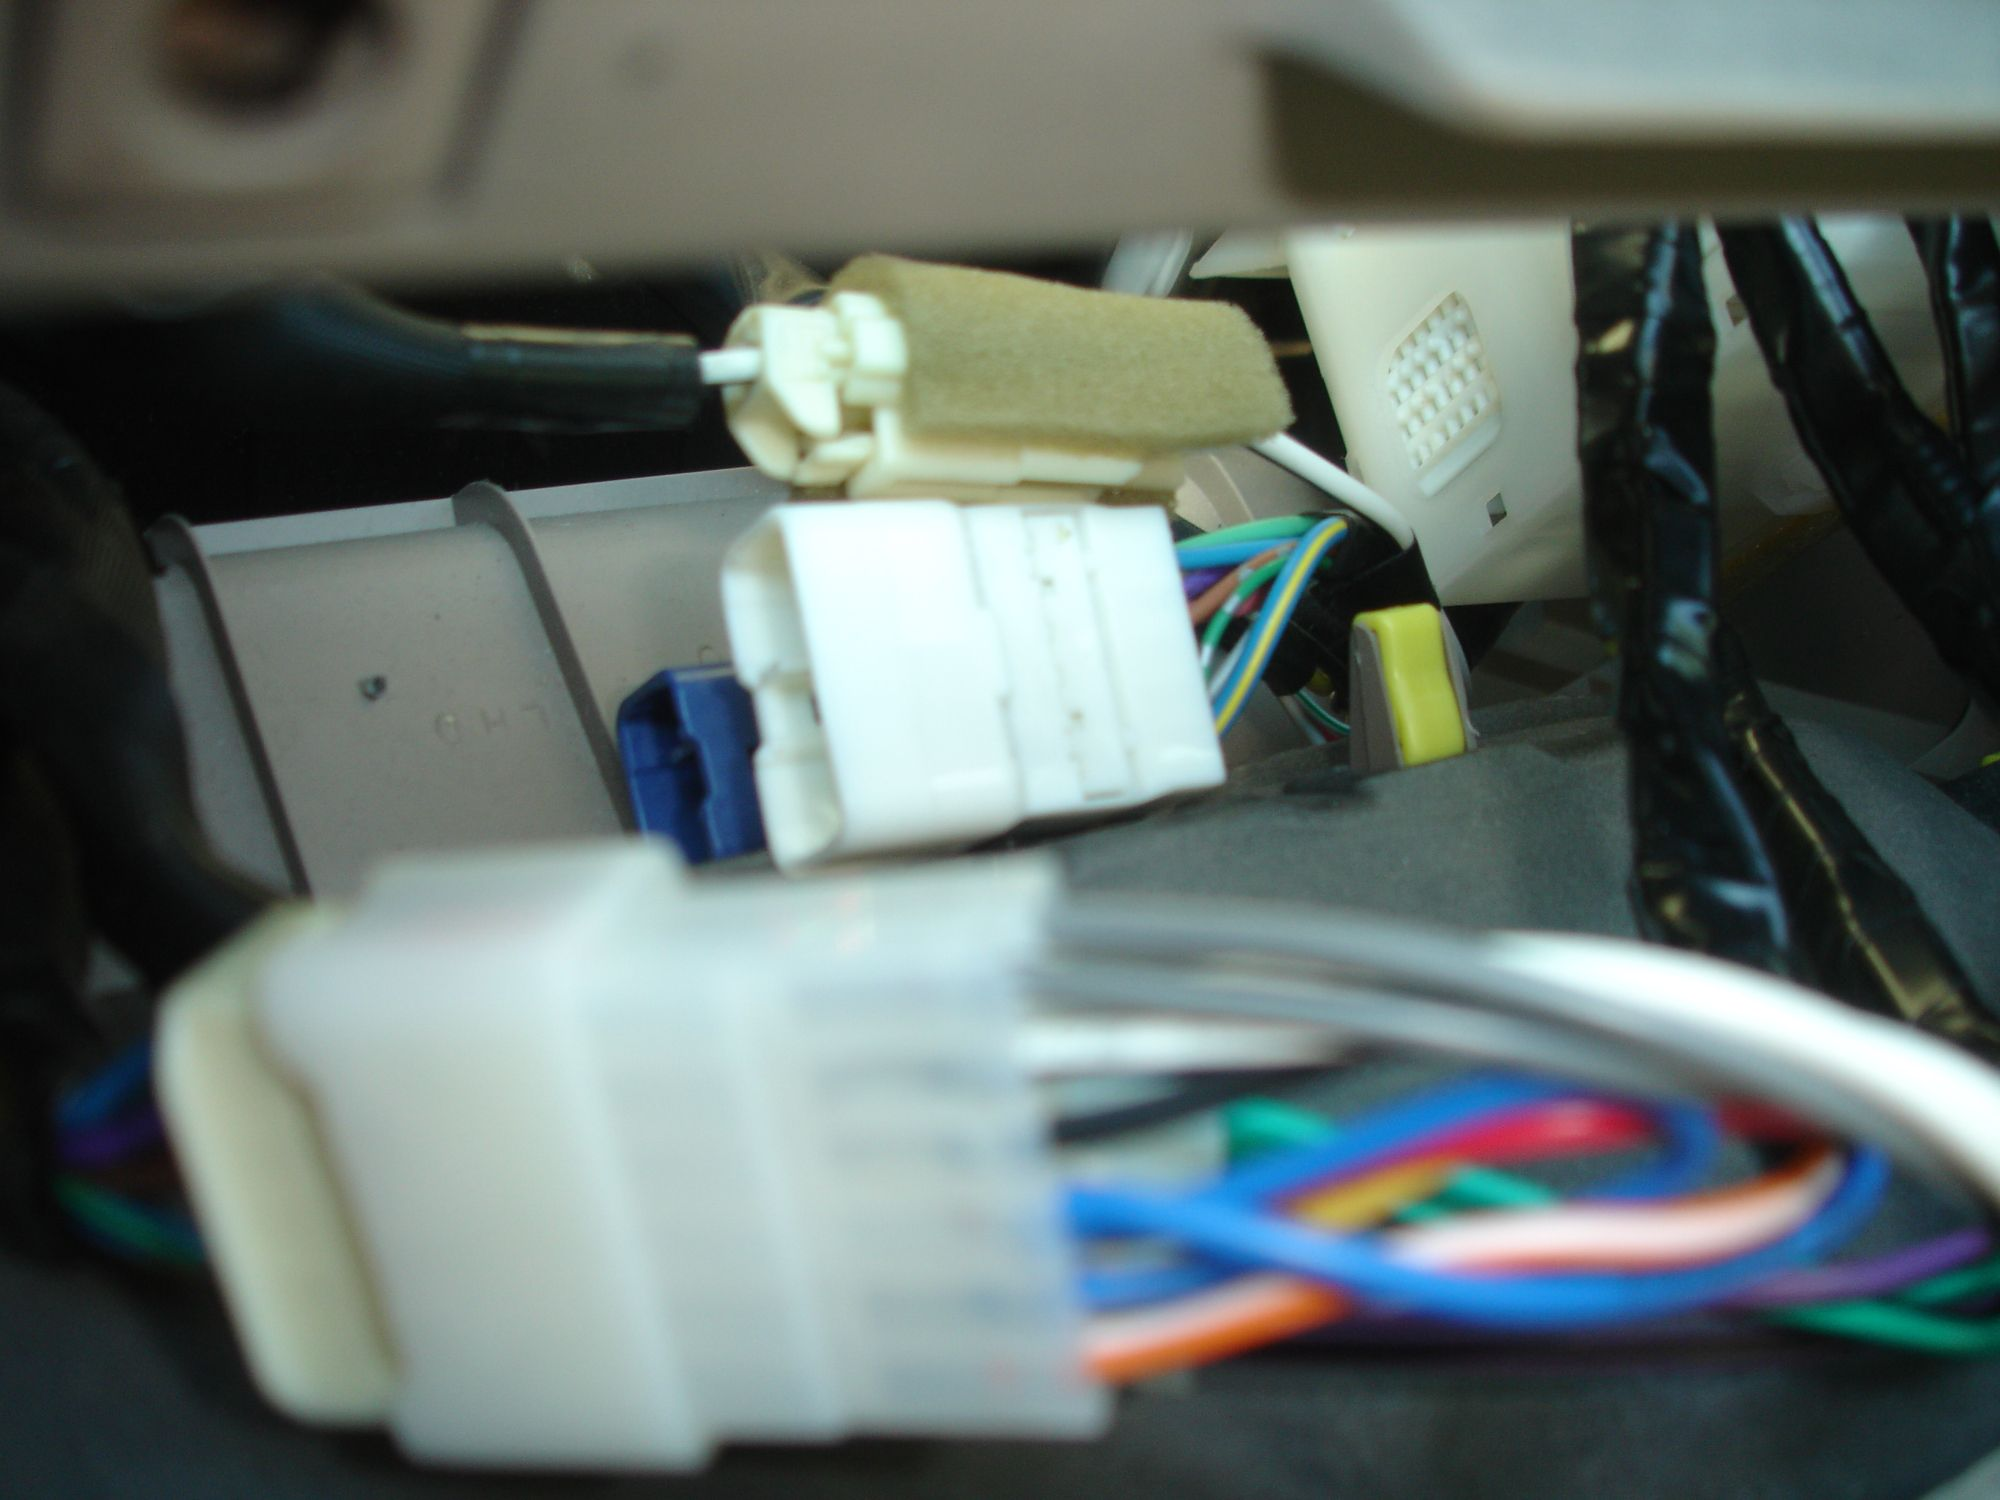 Finding An Electrical Short Circuit On Your Car Wiring Harness Board